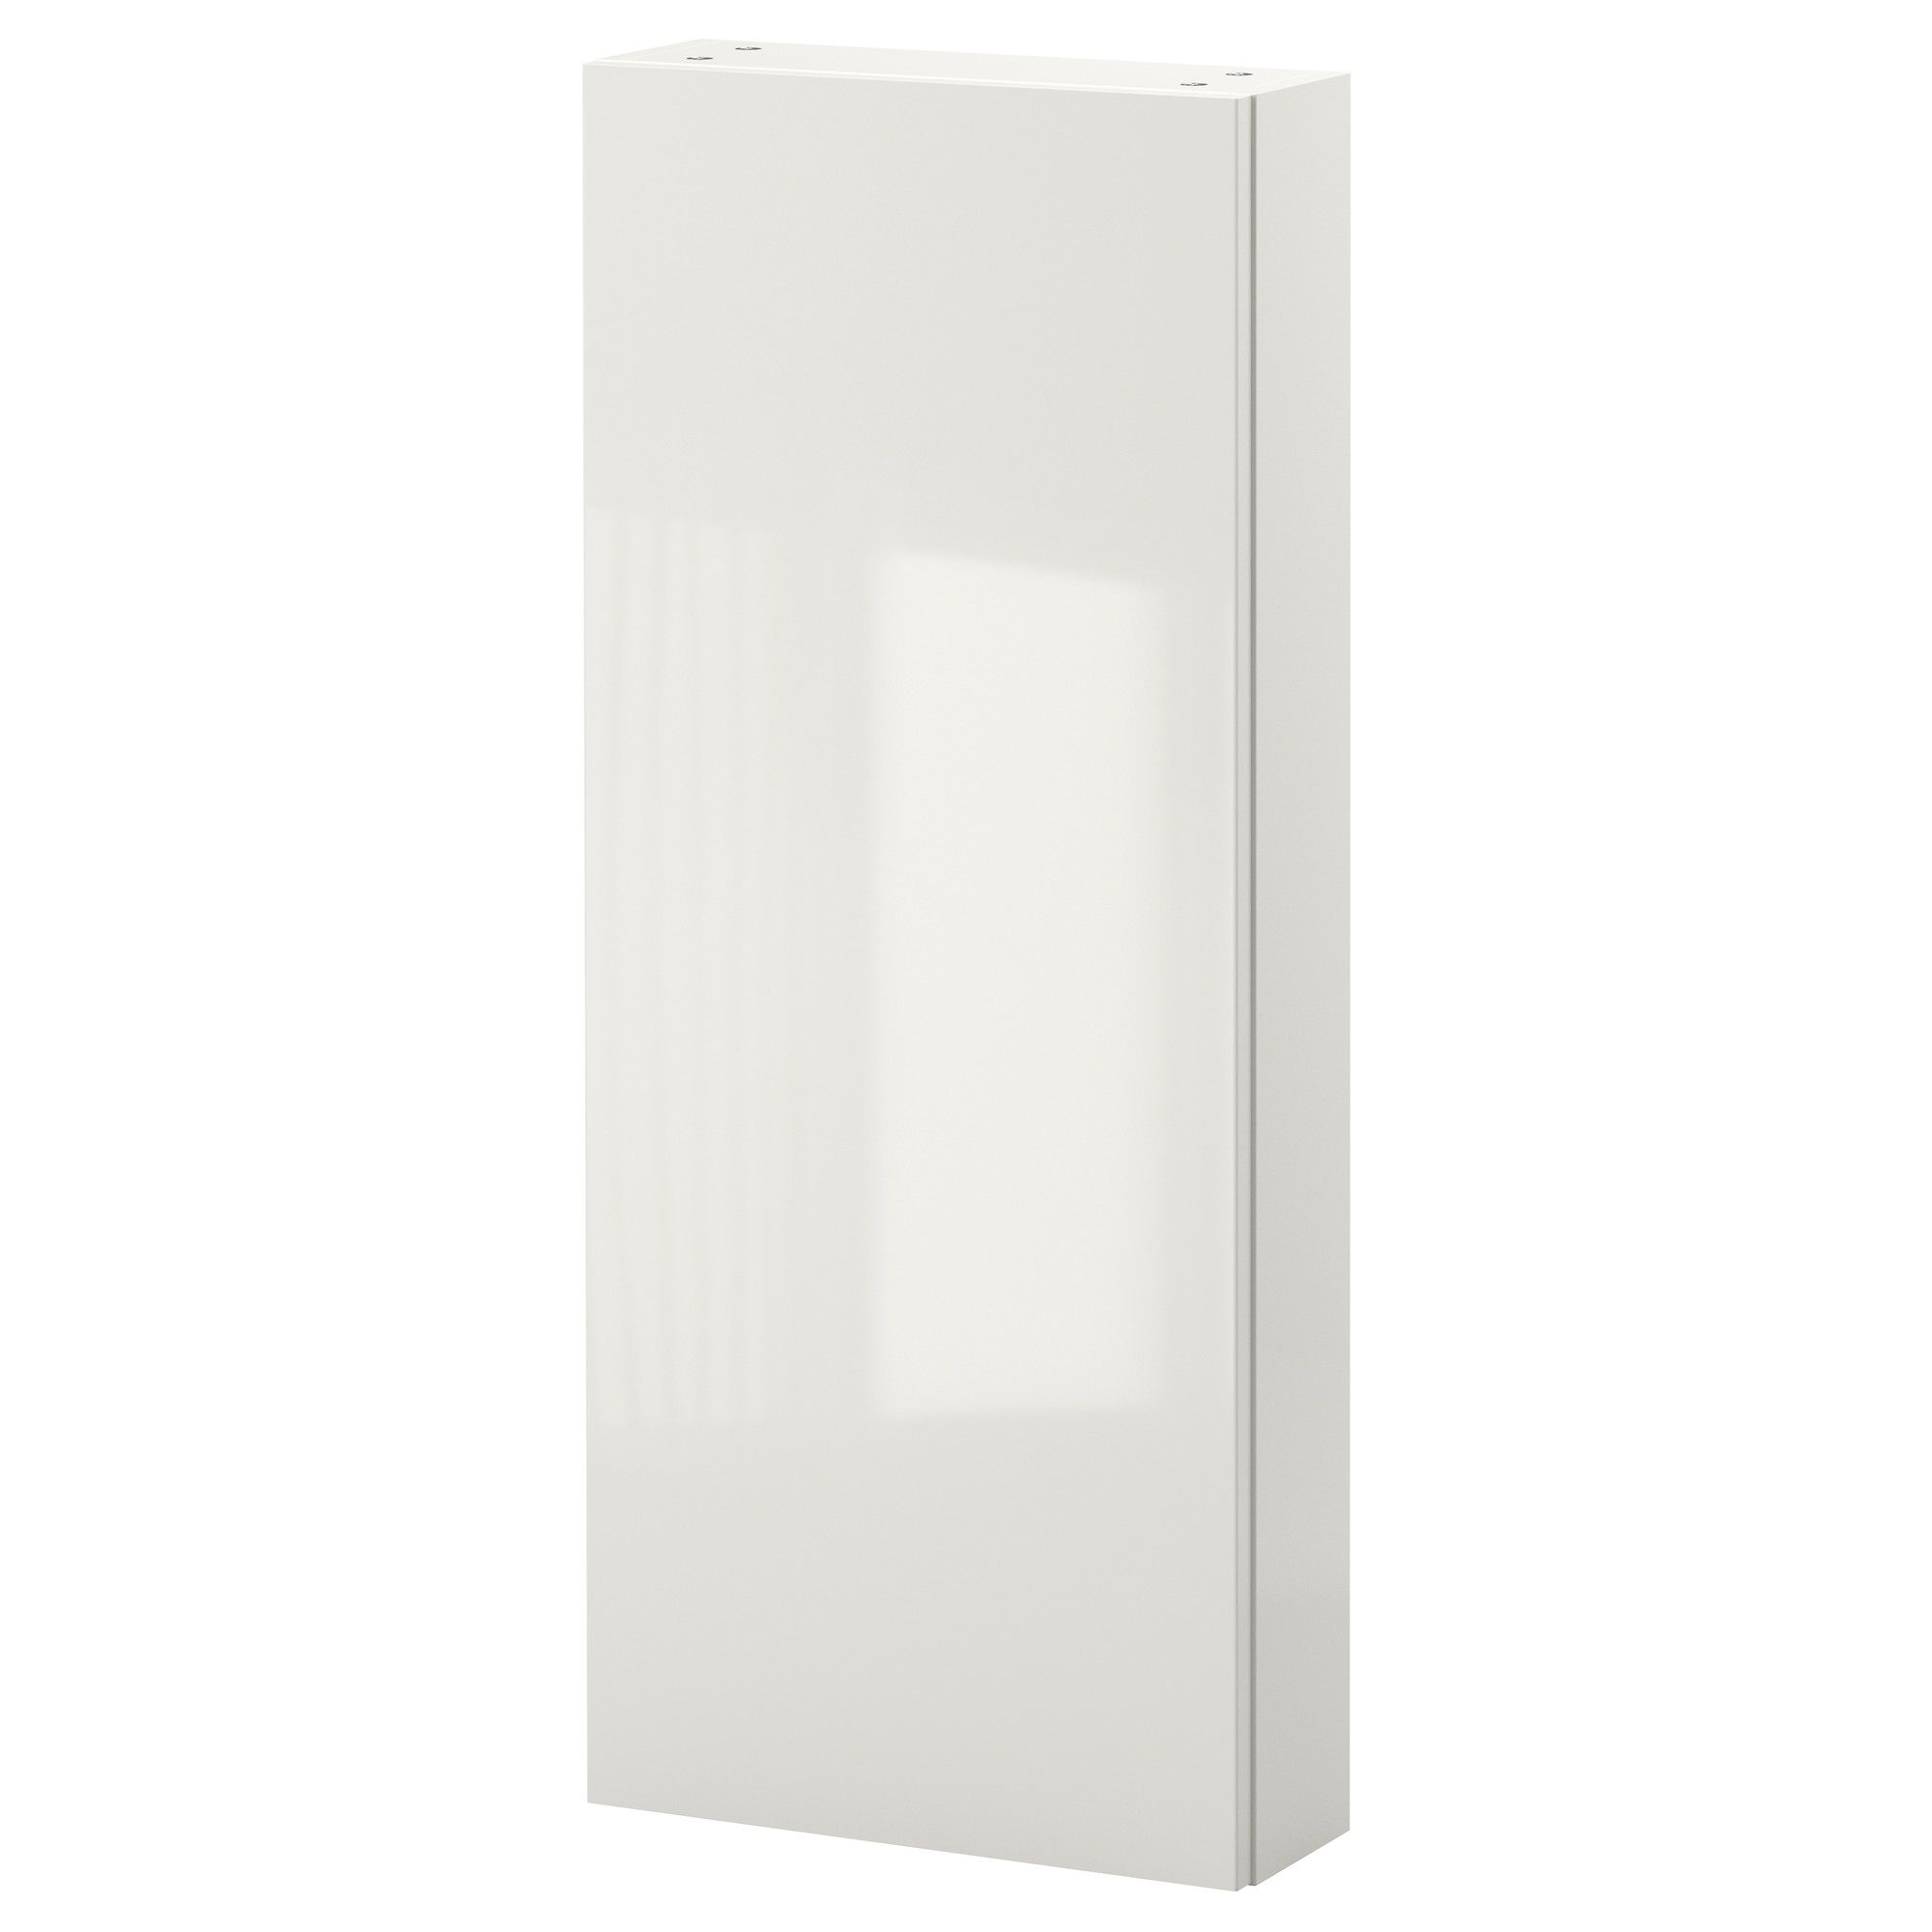 Ikea, wall cabinets and cabinets on pinterest